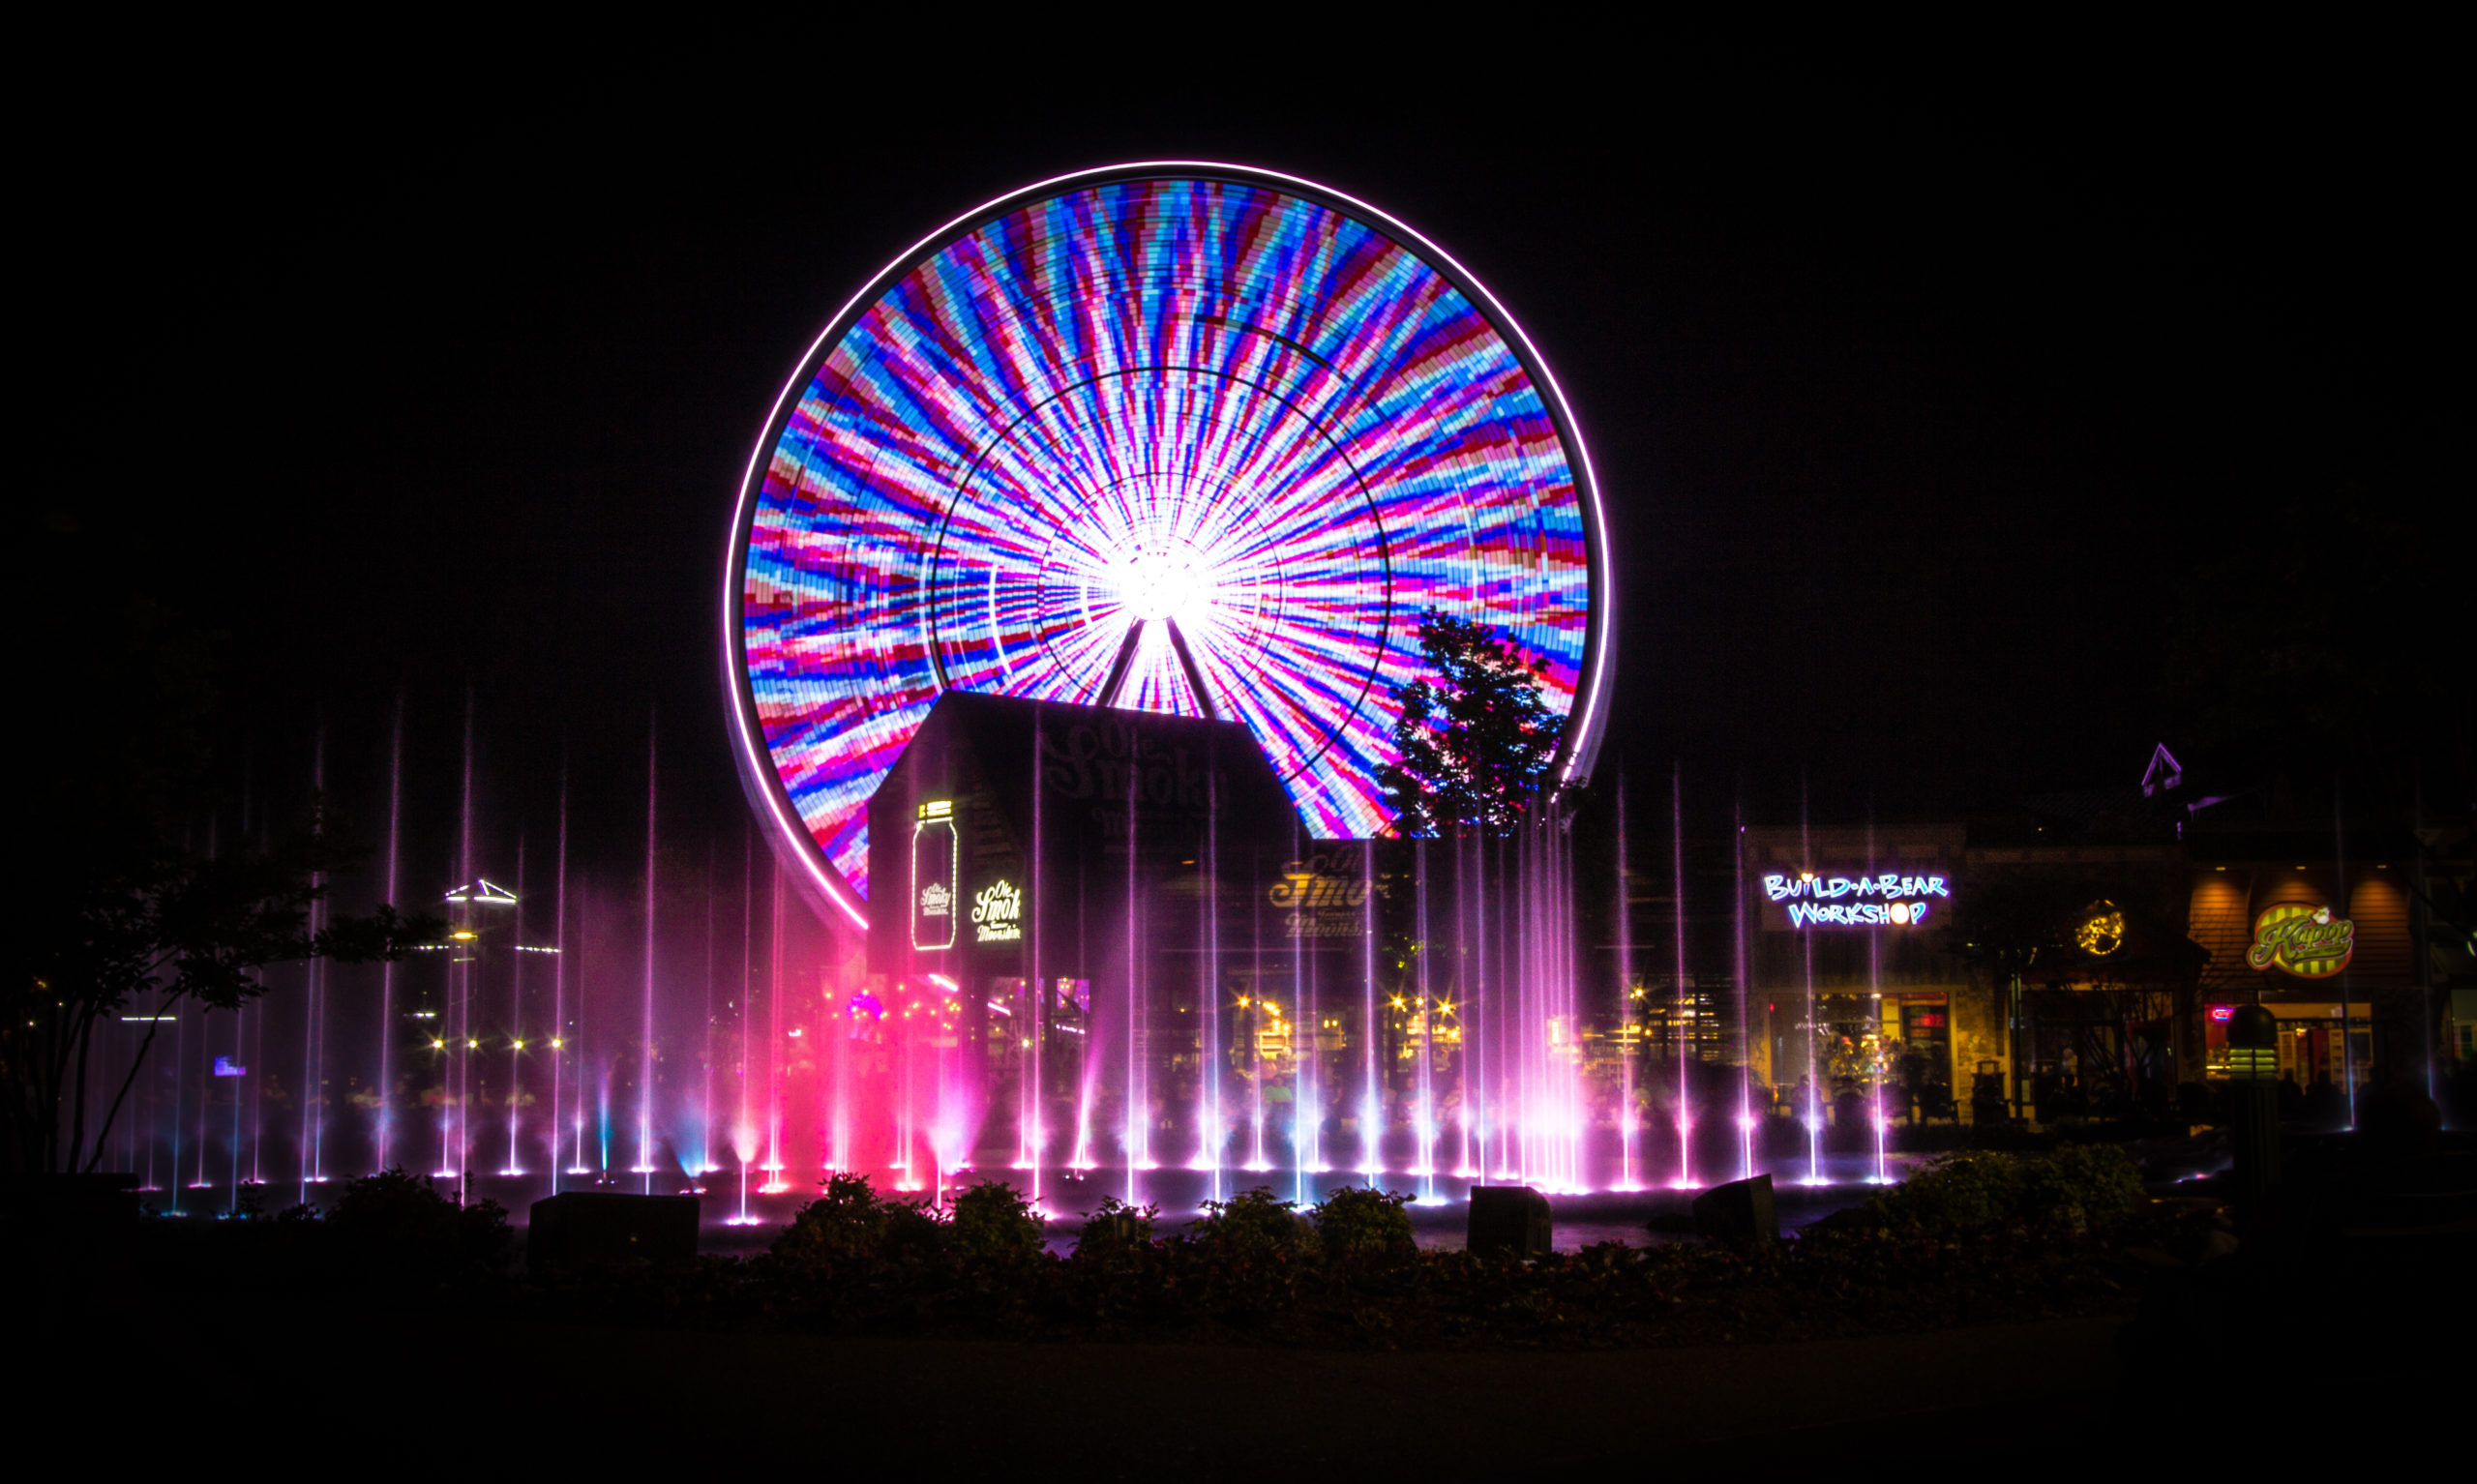 The Great Smoky Mountain Wheel at The Island, Pigeon Forge